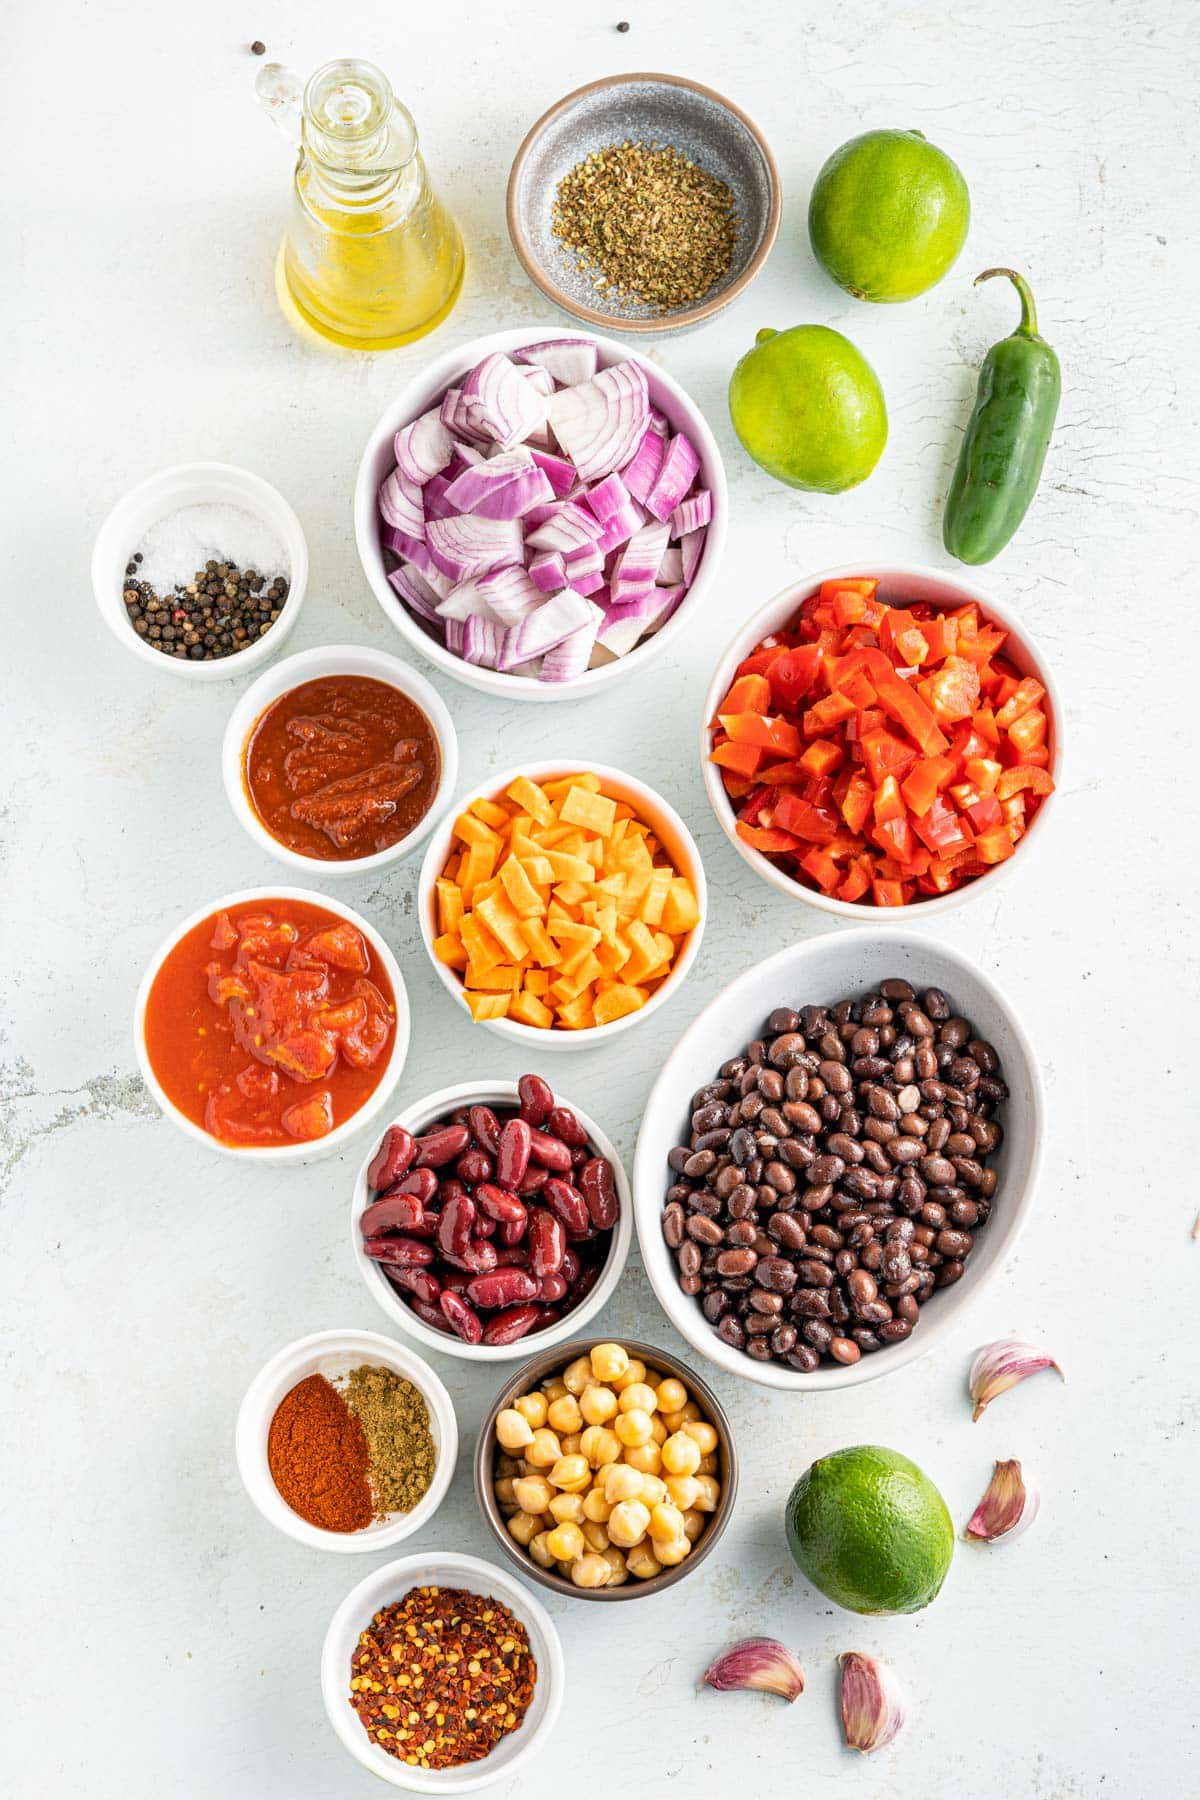 vegetarian smoky chili ingredients including black beans, chickpeas, peppers, kidney beans and spices